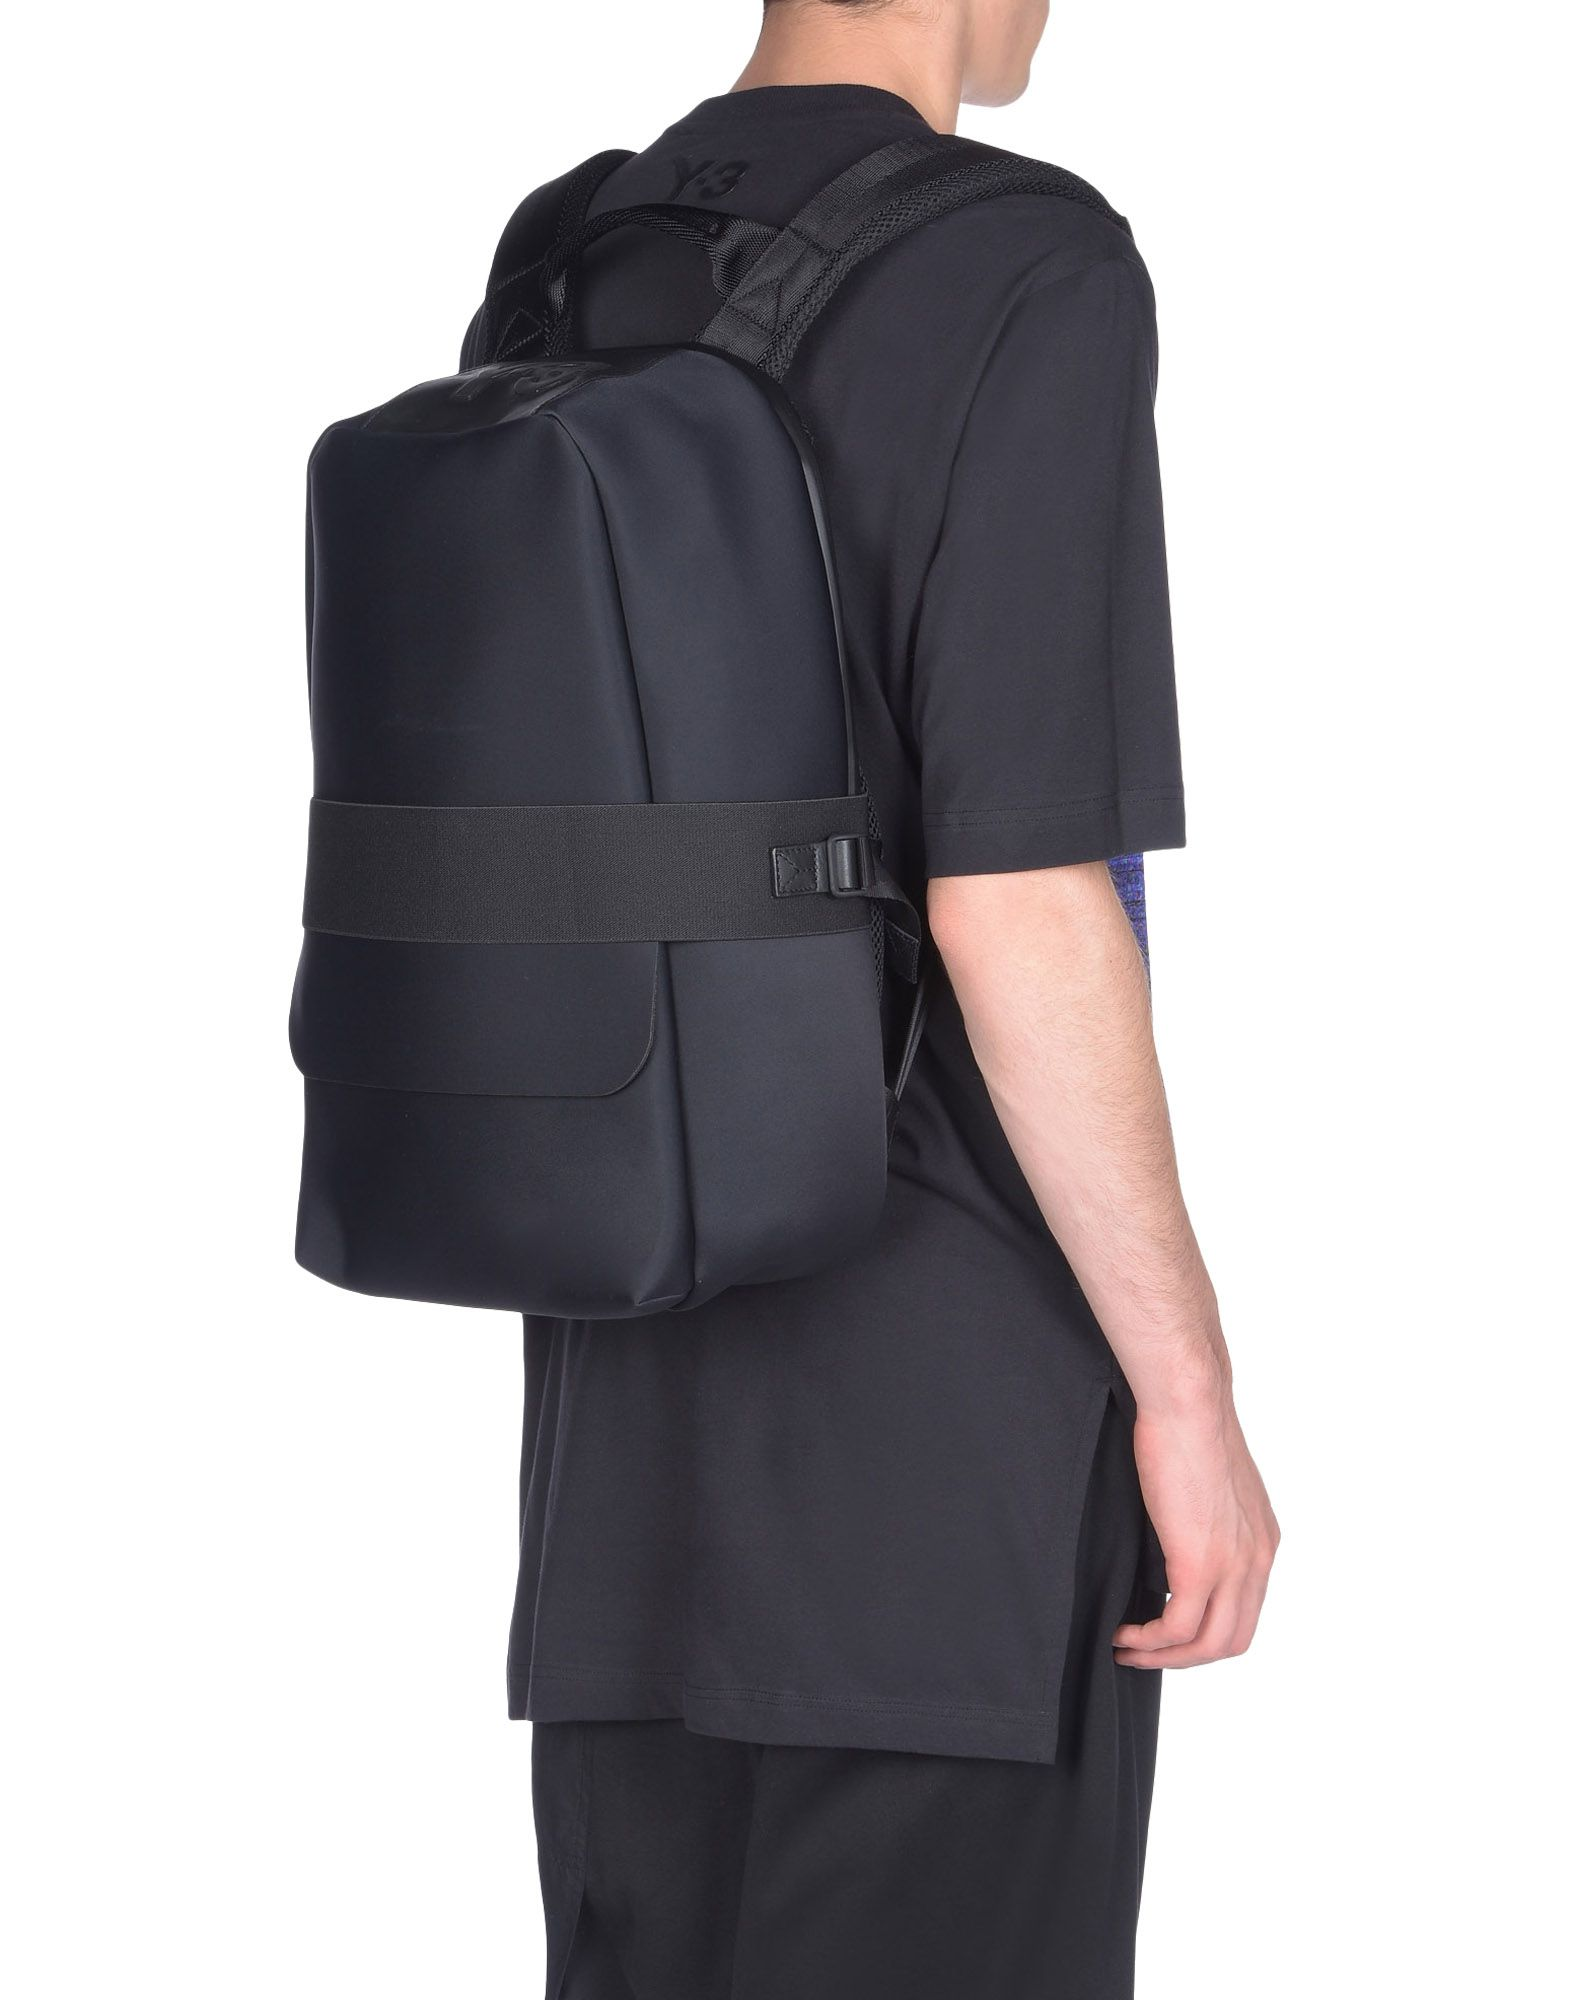 Y-3 Y-3 QASA BACKPACK Backpack E r